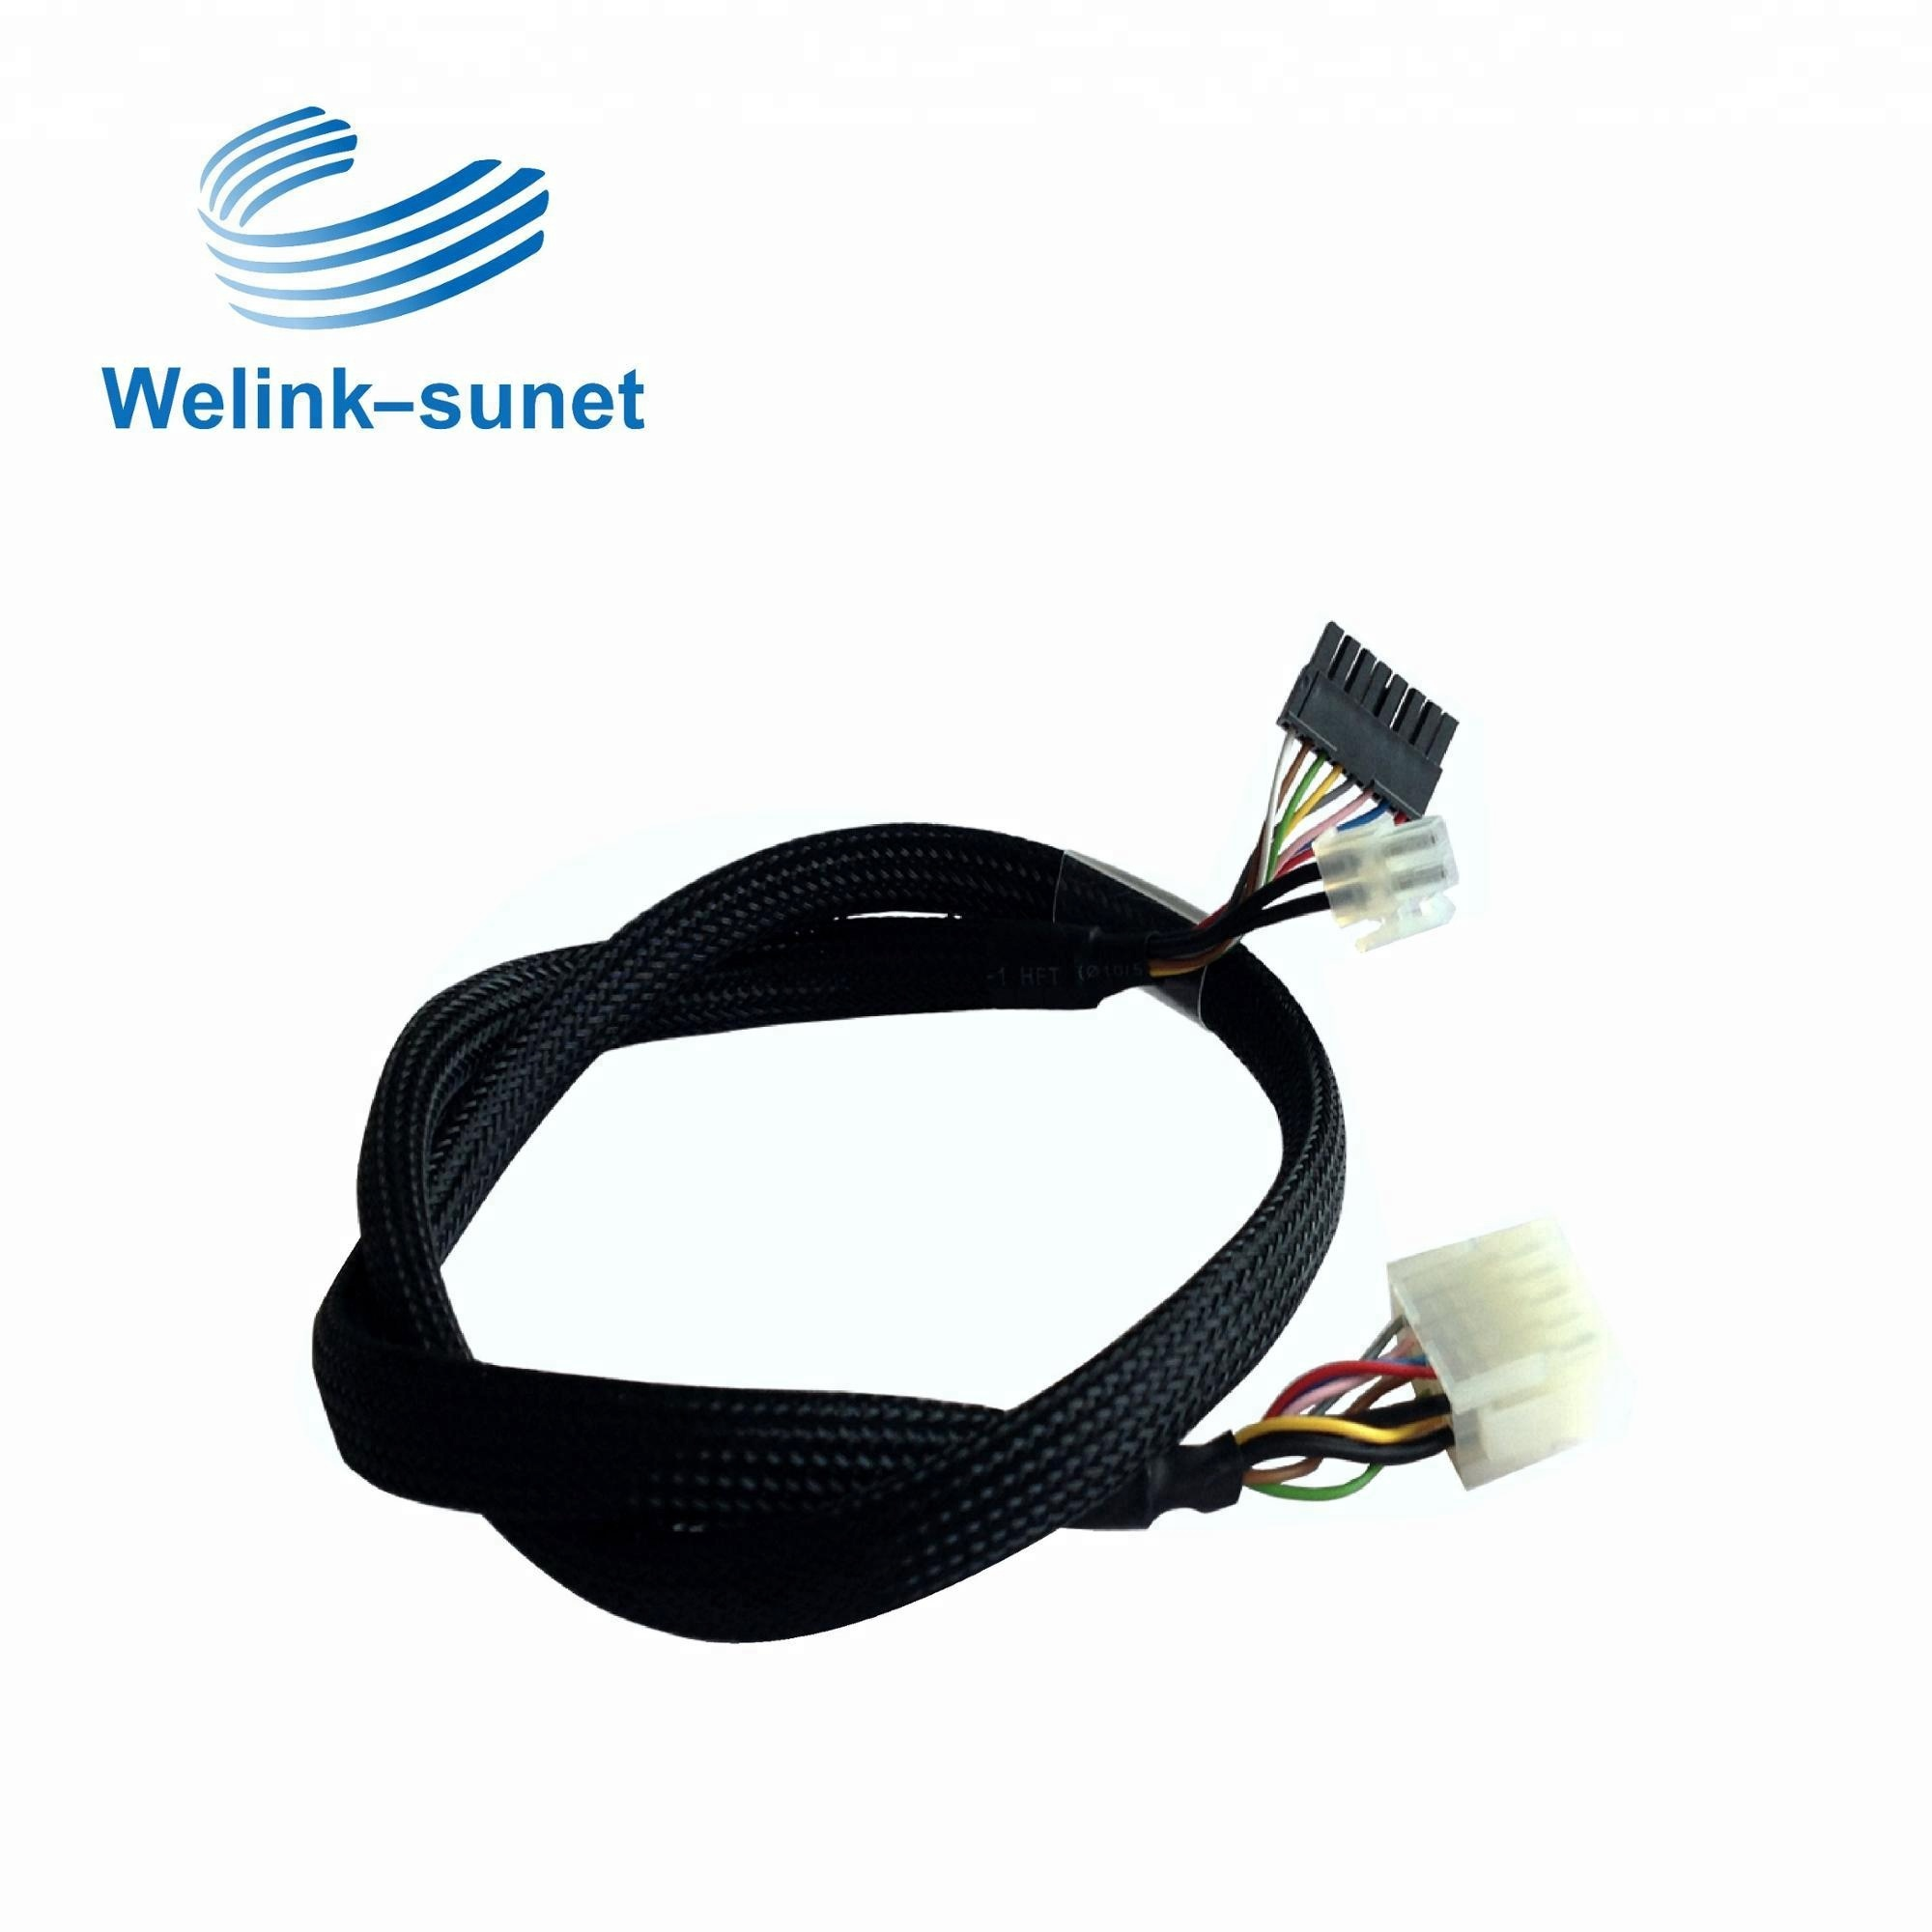 Groovy Helukable Super Flexible Cable Wire Harness For Industrial Robot Wiring Digital Resources Attrlexorcompassionincorg